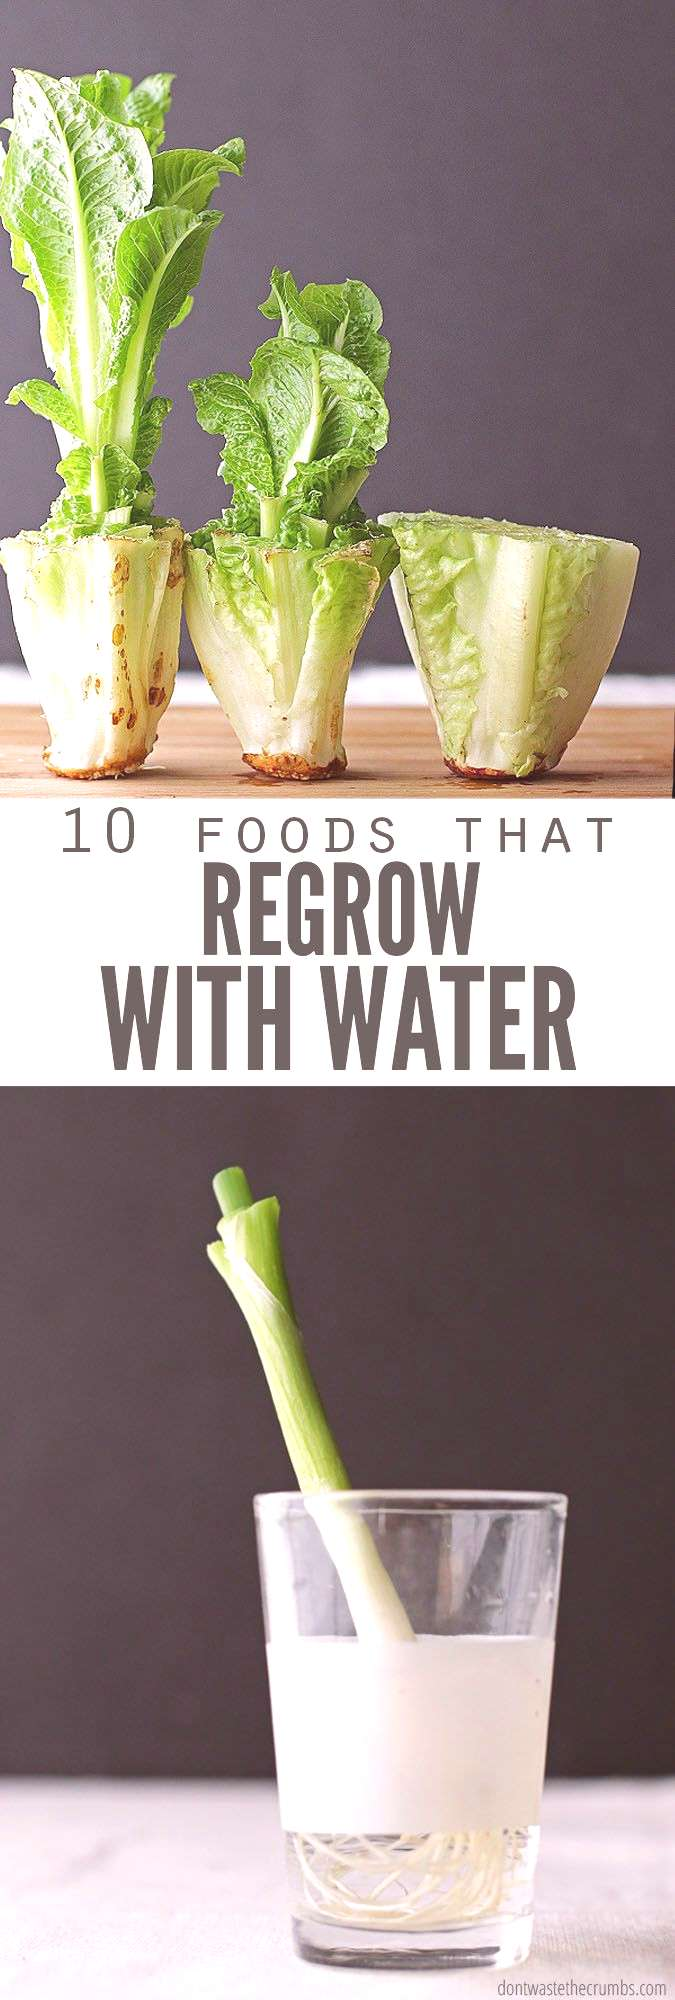 Save money and regrow food scraps in water. Perfect if you don't have room for a vegetable garden &